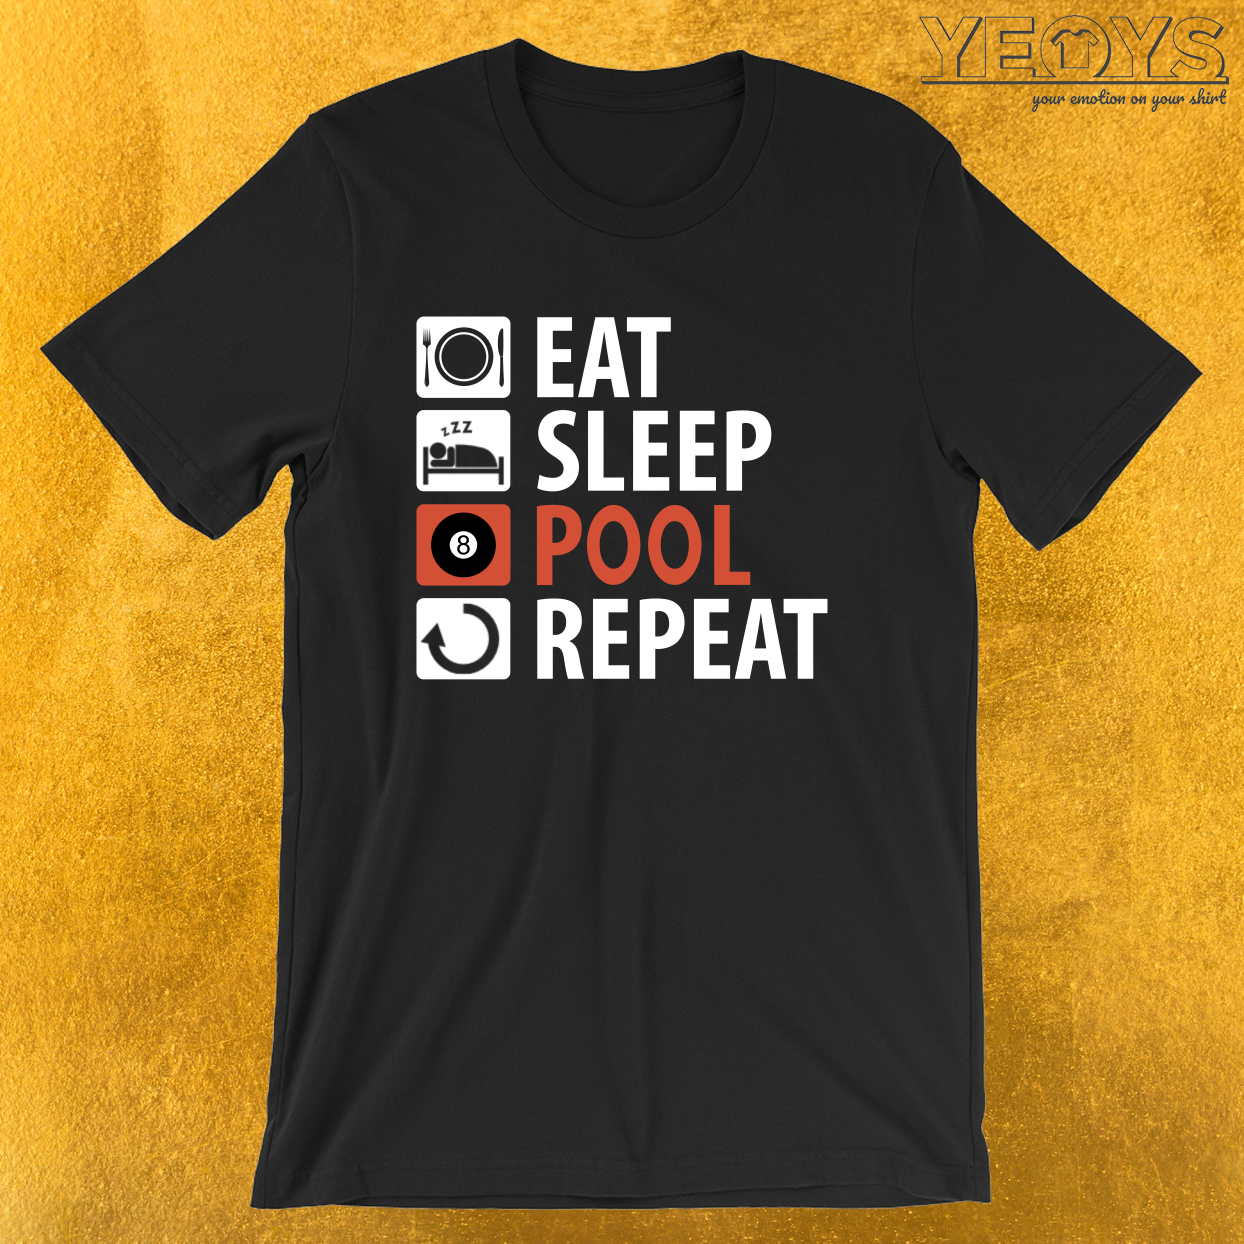 Eat Sleep Pool Repeat – Pool Billiard Tee